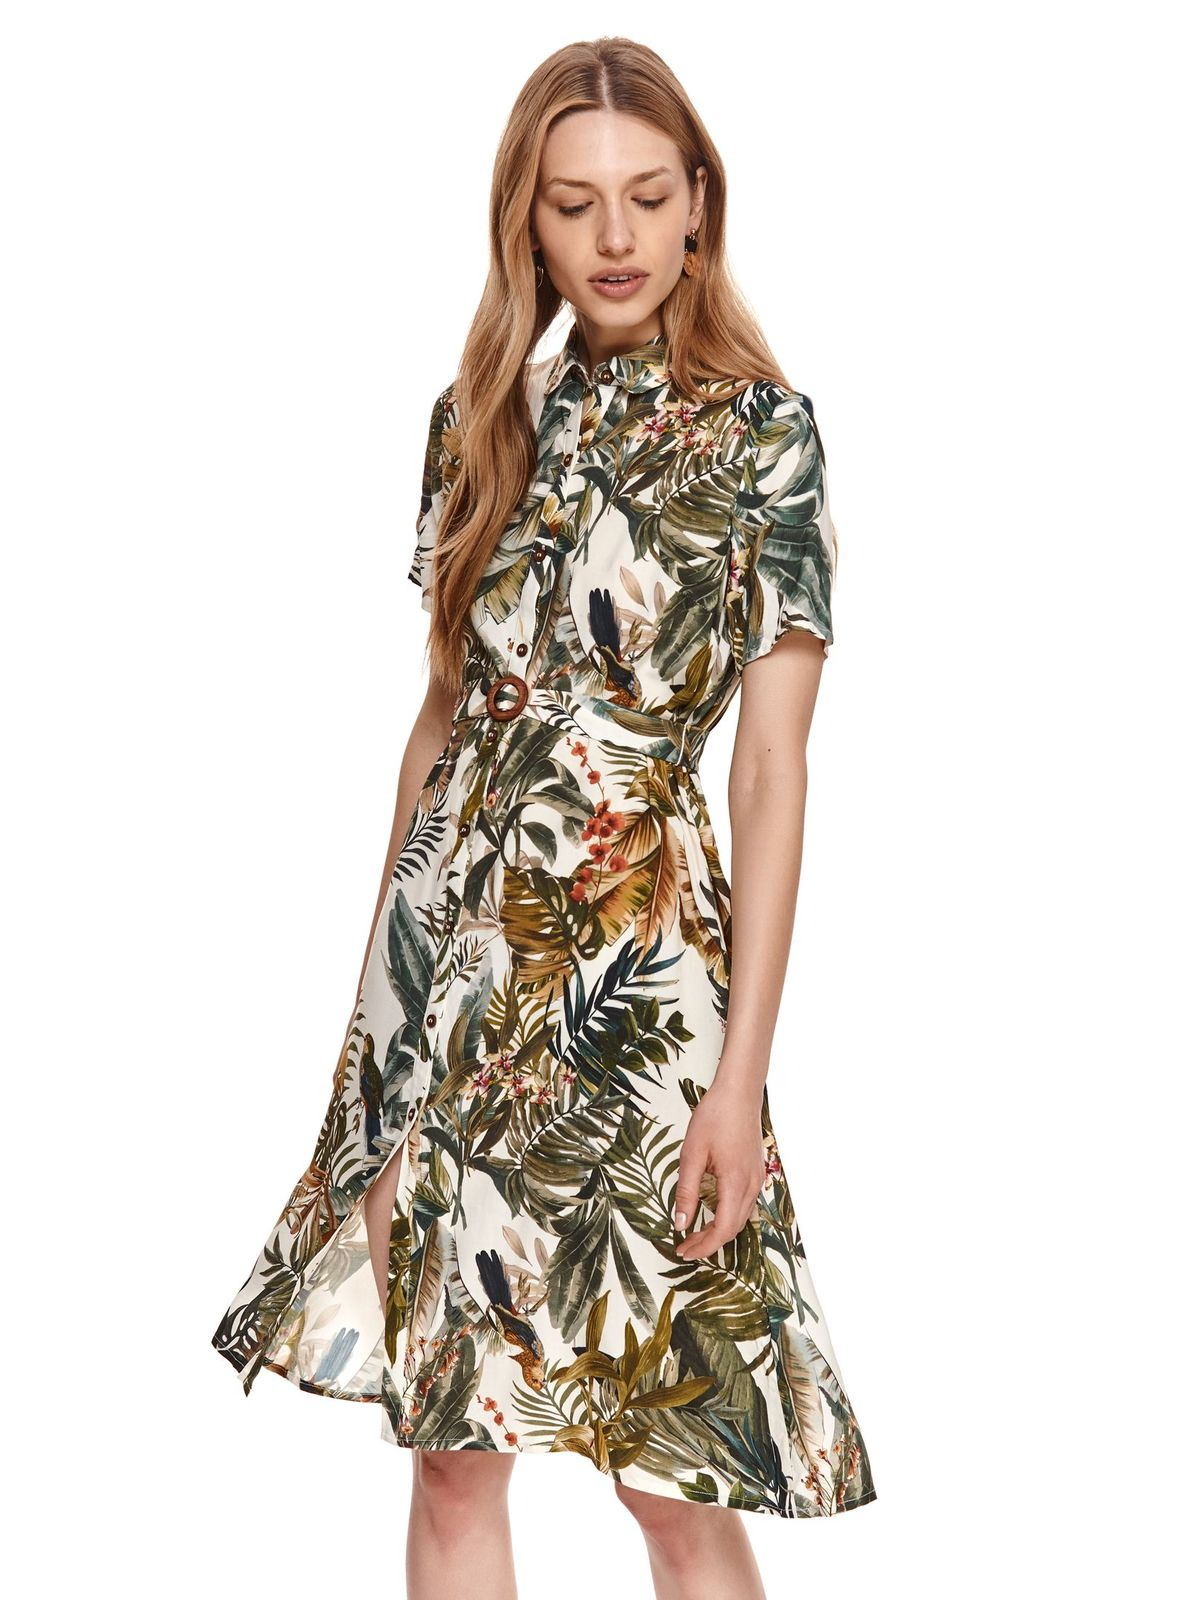 Dress airy fabric midi accessorized with belt with floral print